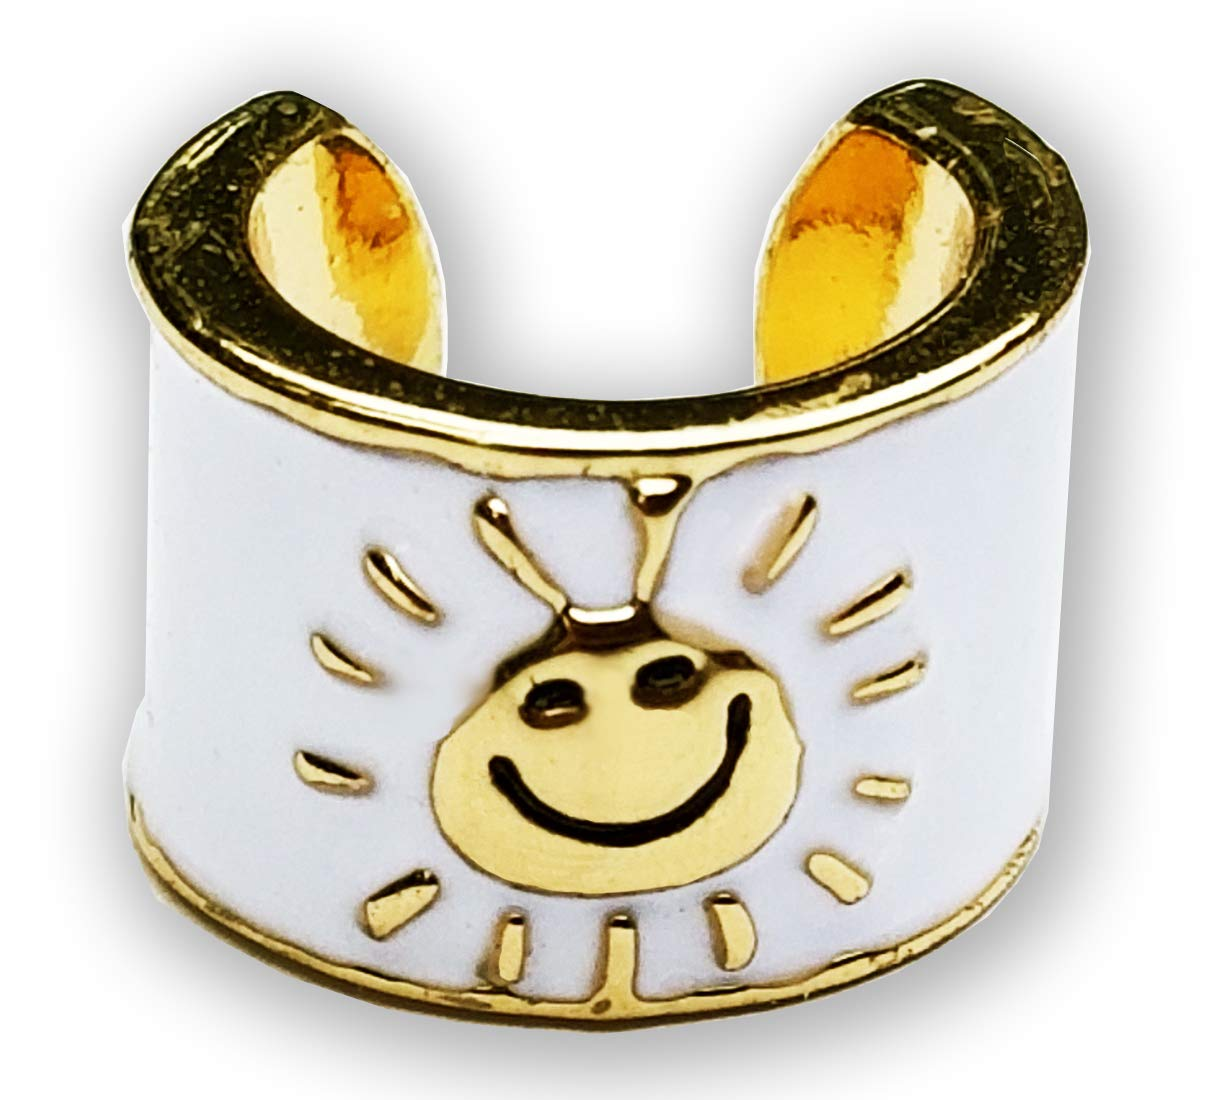 Max 81% OFF charMED Custom Stethoscope Charms - N for Gifts Charm Sunshine ! Super beauty product restock quality top!